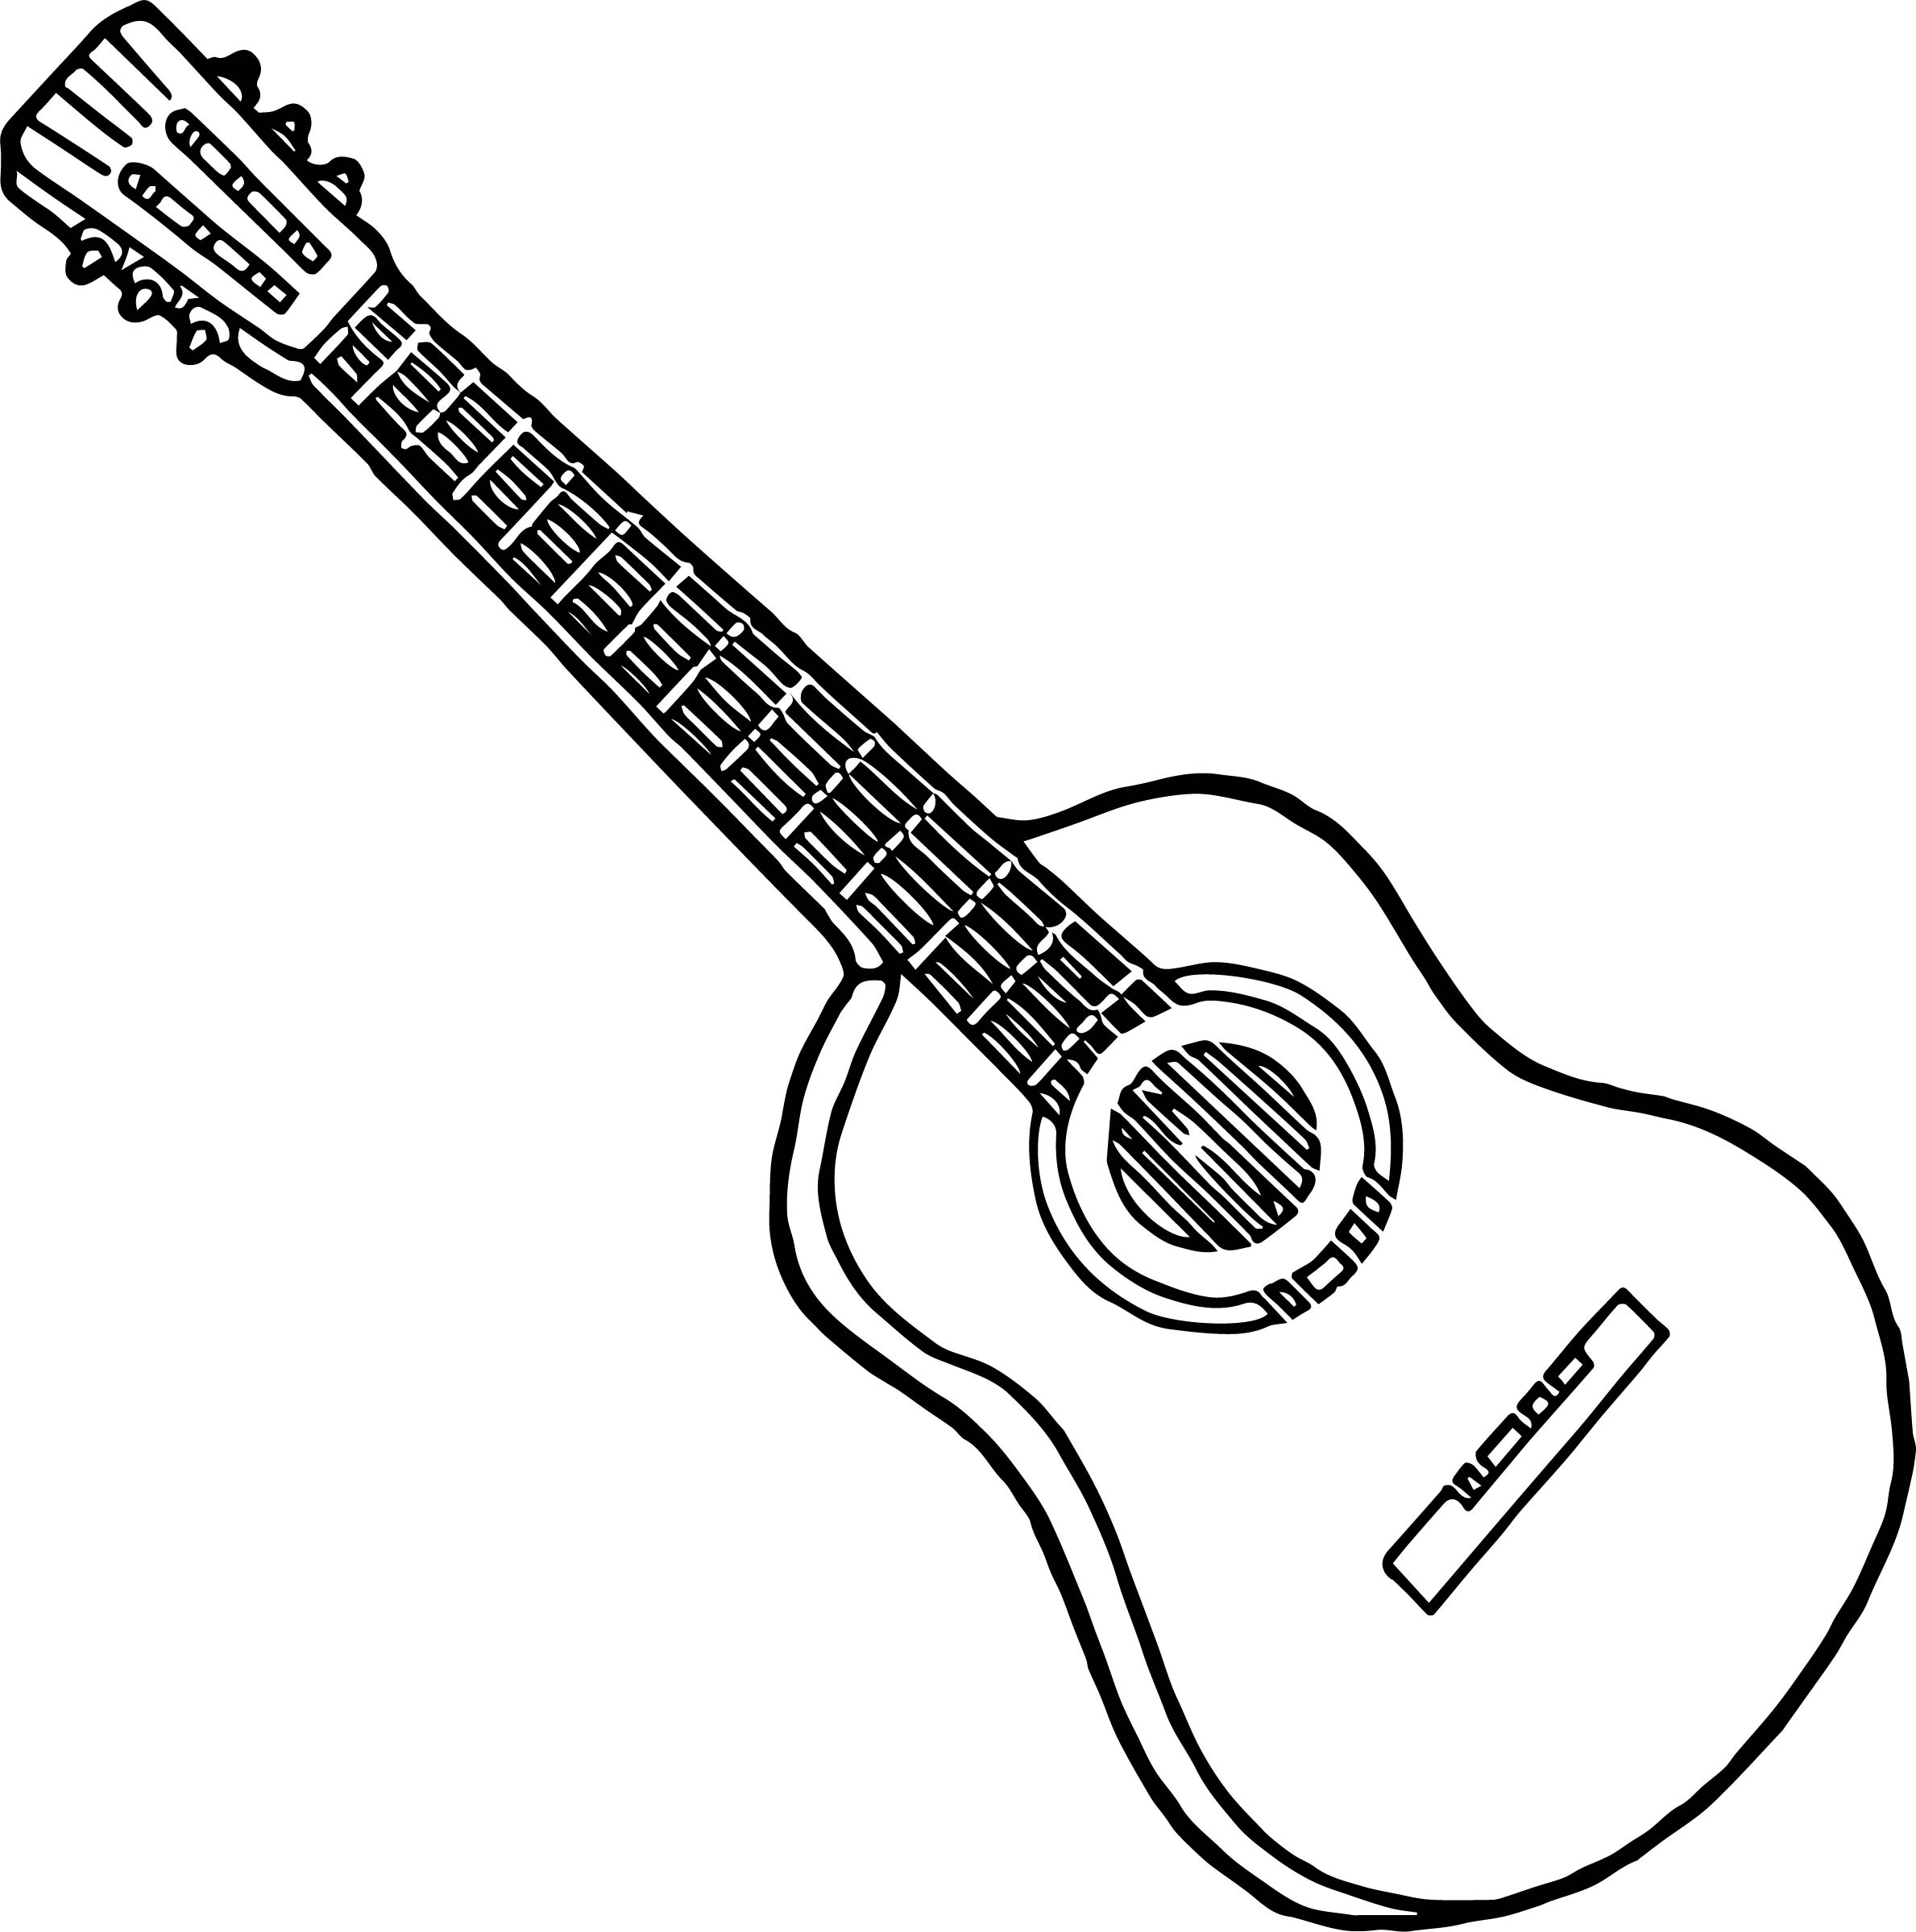 Line Drawing Guitar : Acoustic guitar line drawing at getdrawings free for